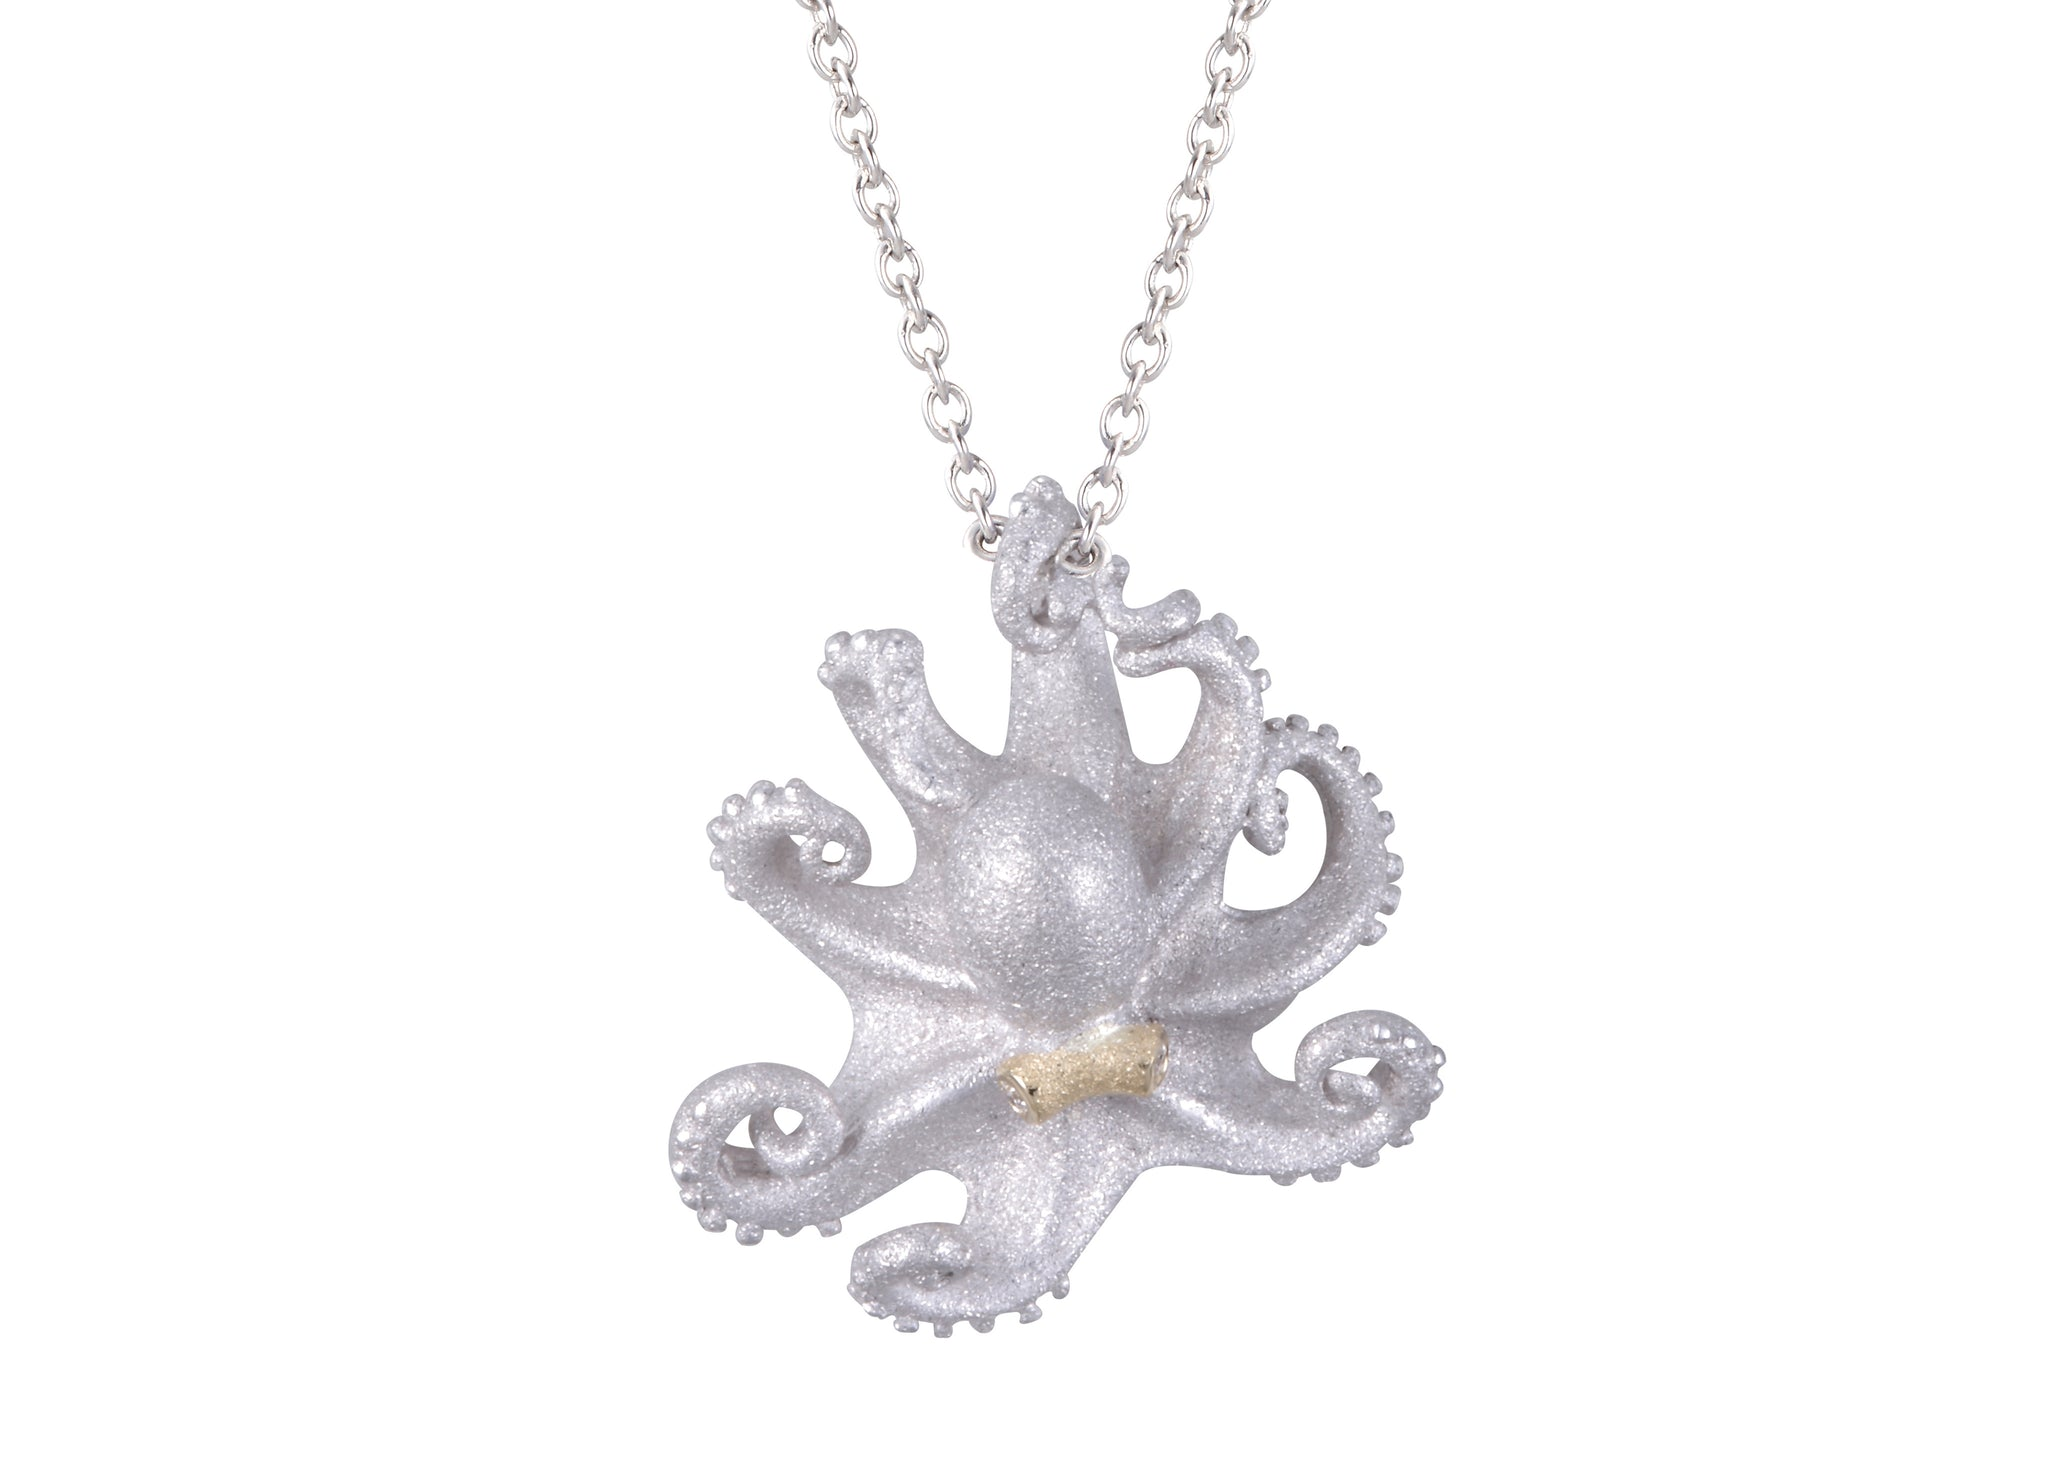 Silver and Yellow Gold 21mm Octopus Pendant